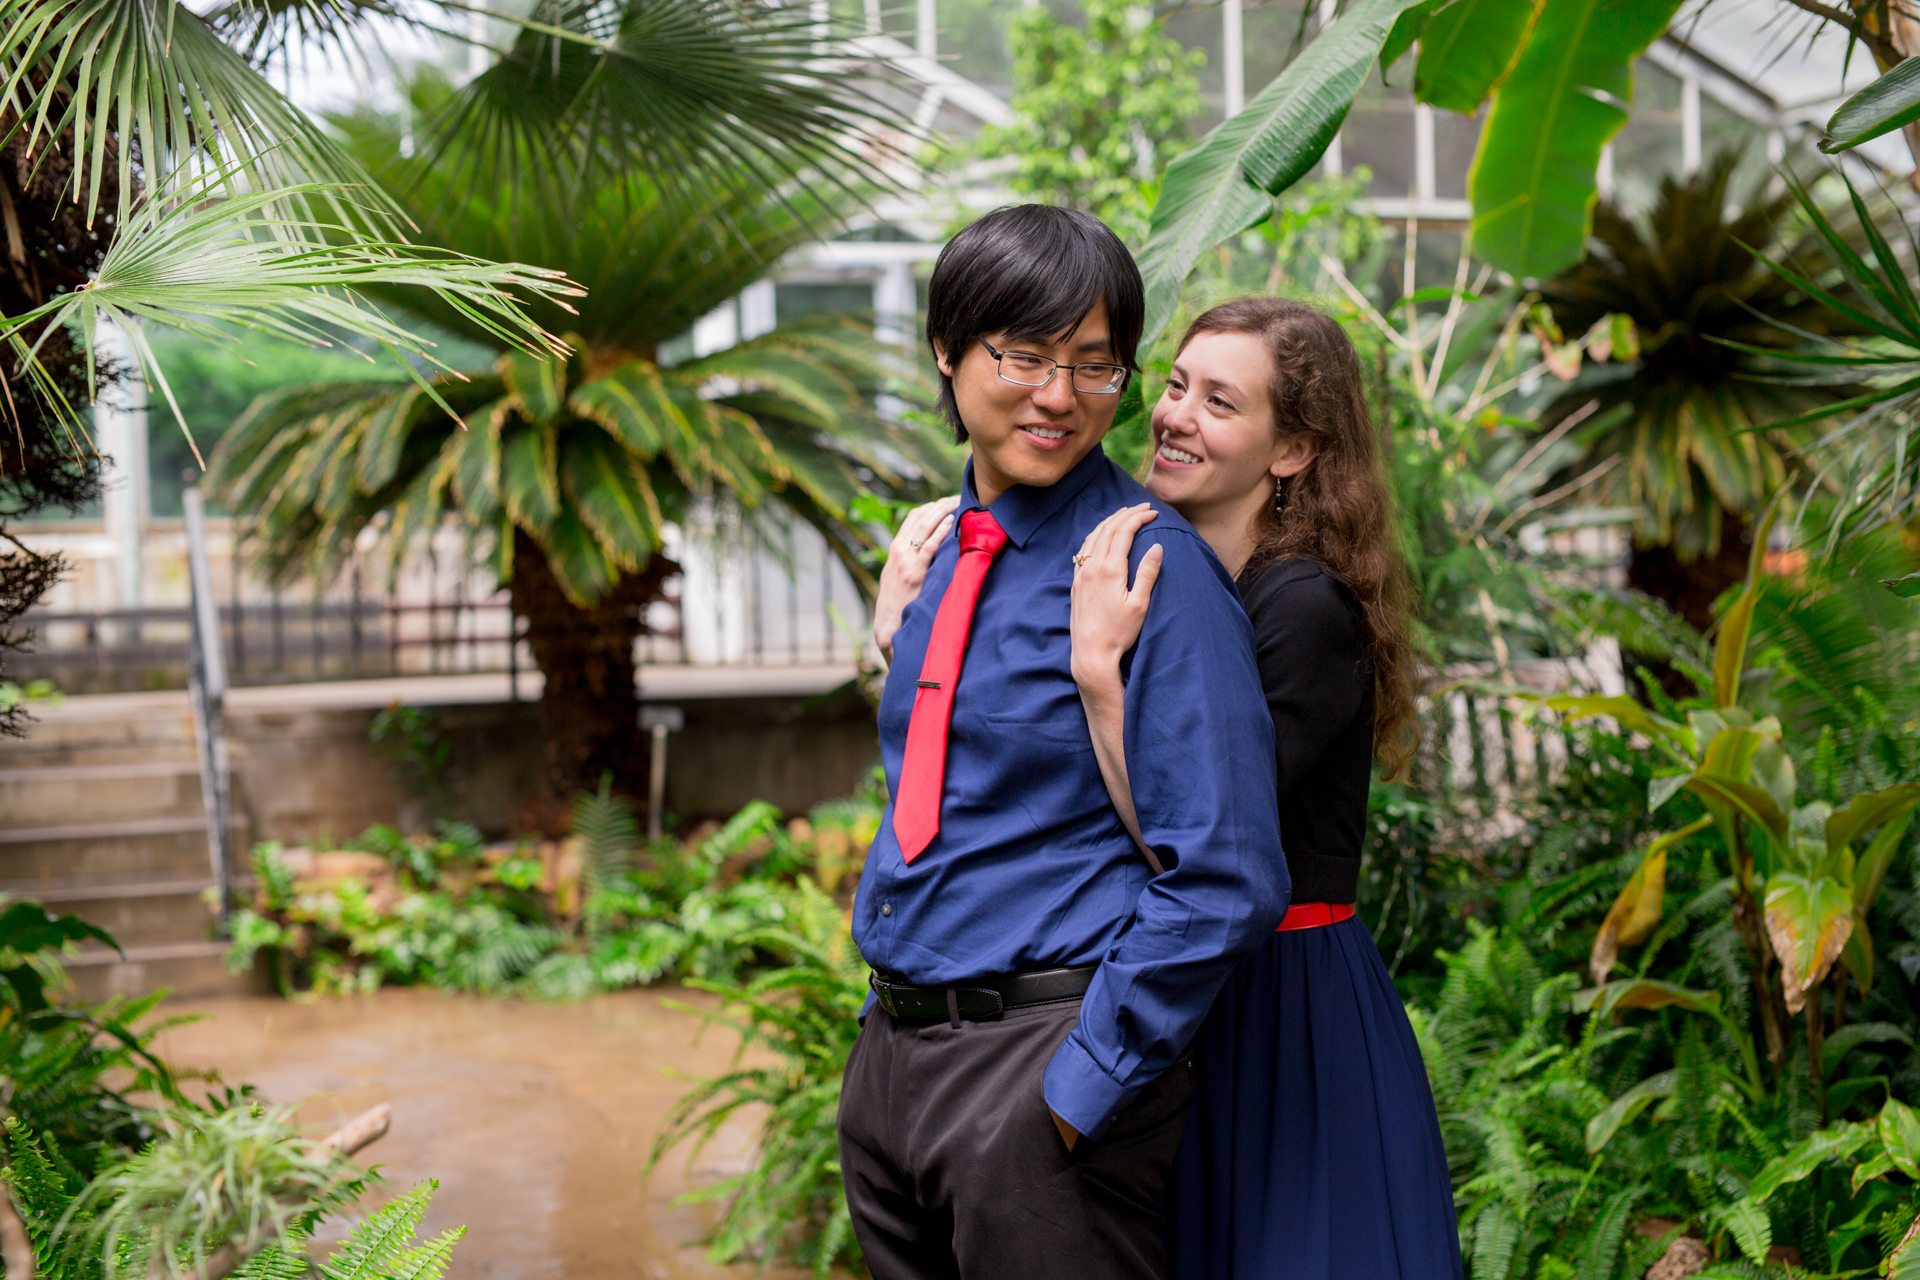 luthy botanical gardens greenhouse engagement biracial couple peoria centrail illinois wedding photographer photographers bloomington normal illinois valley lasalle peru ottawa-29.jpg